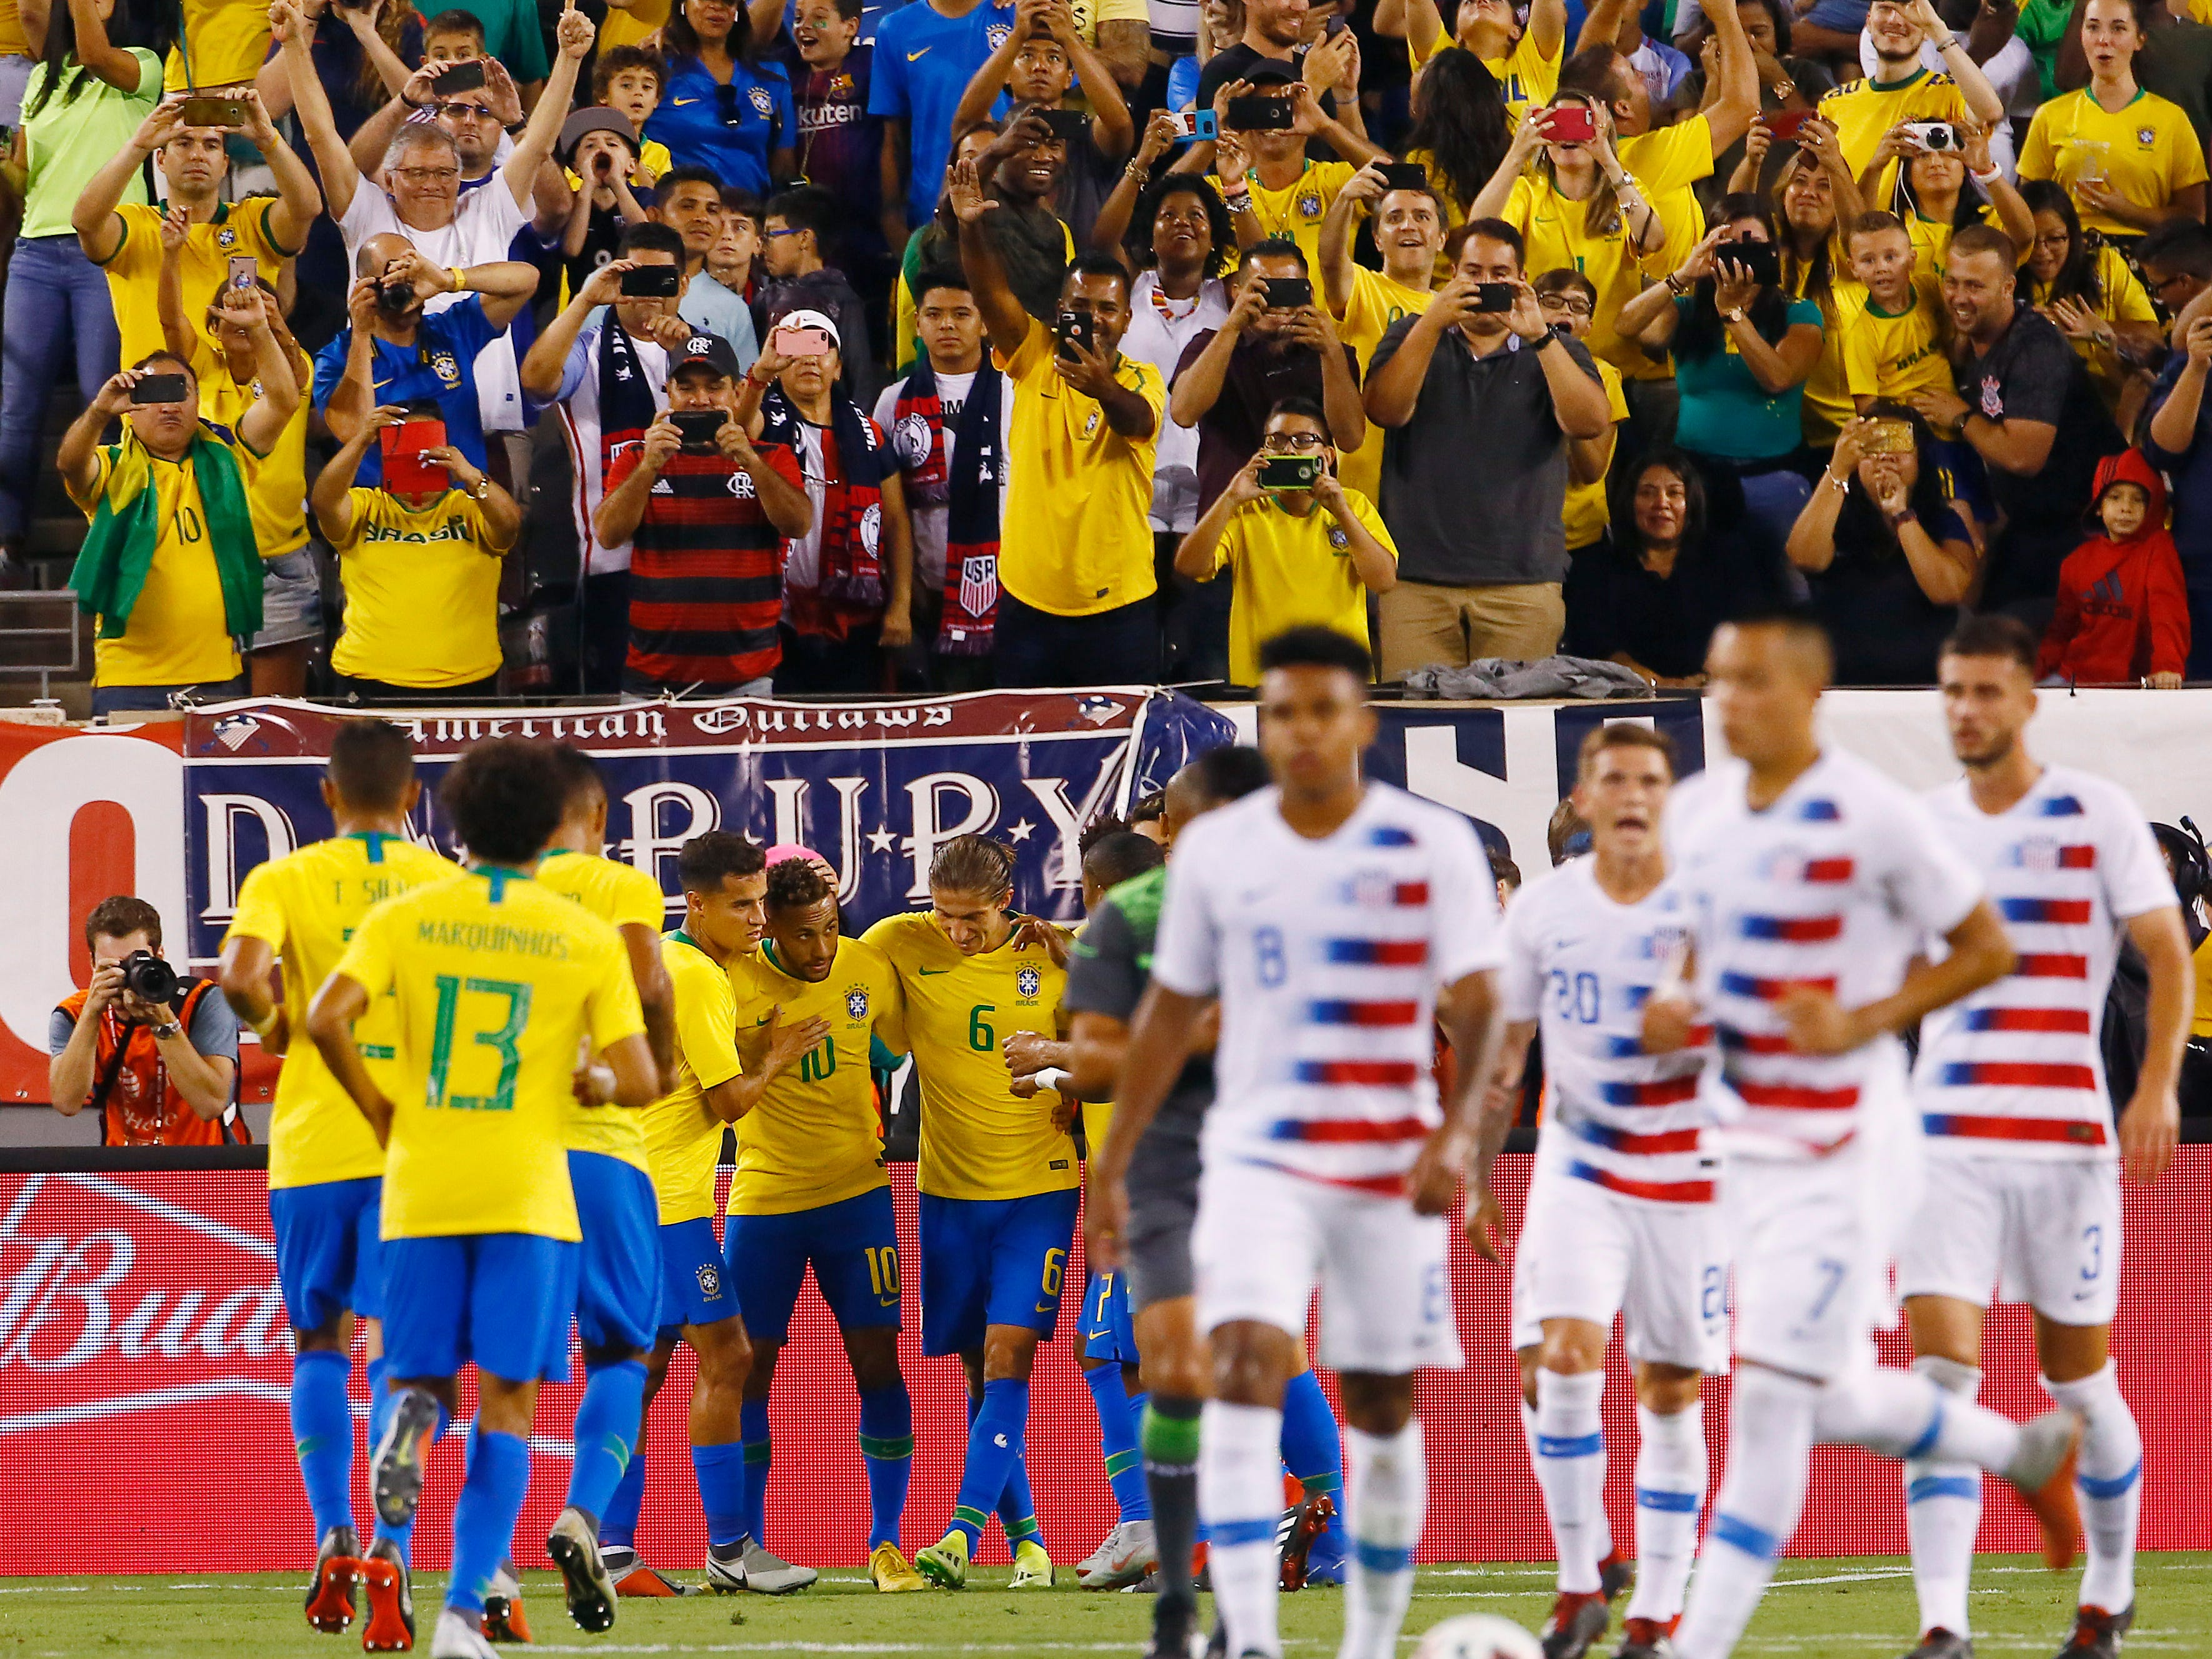 Brazil celebrates after Neymar put in a PK vs. US Men's National team goalkeeper Zack Steffen during their international friendly at MetLife Stadium in East Rutherford, N.J. The US was defeated 2-0 by the five-time World Cup champions. September 7, 2018, East Rutherford, NJ